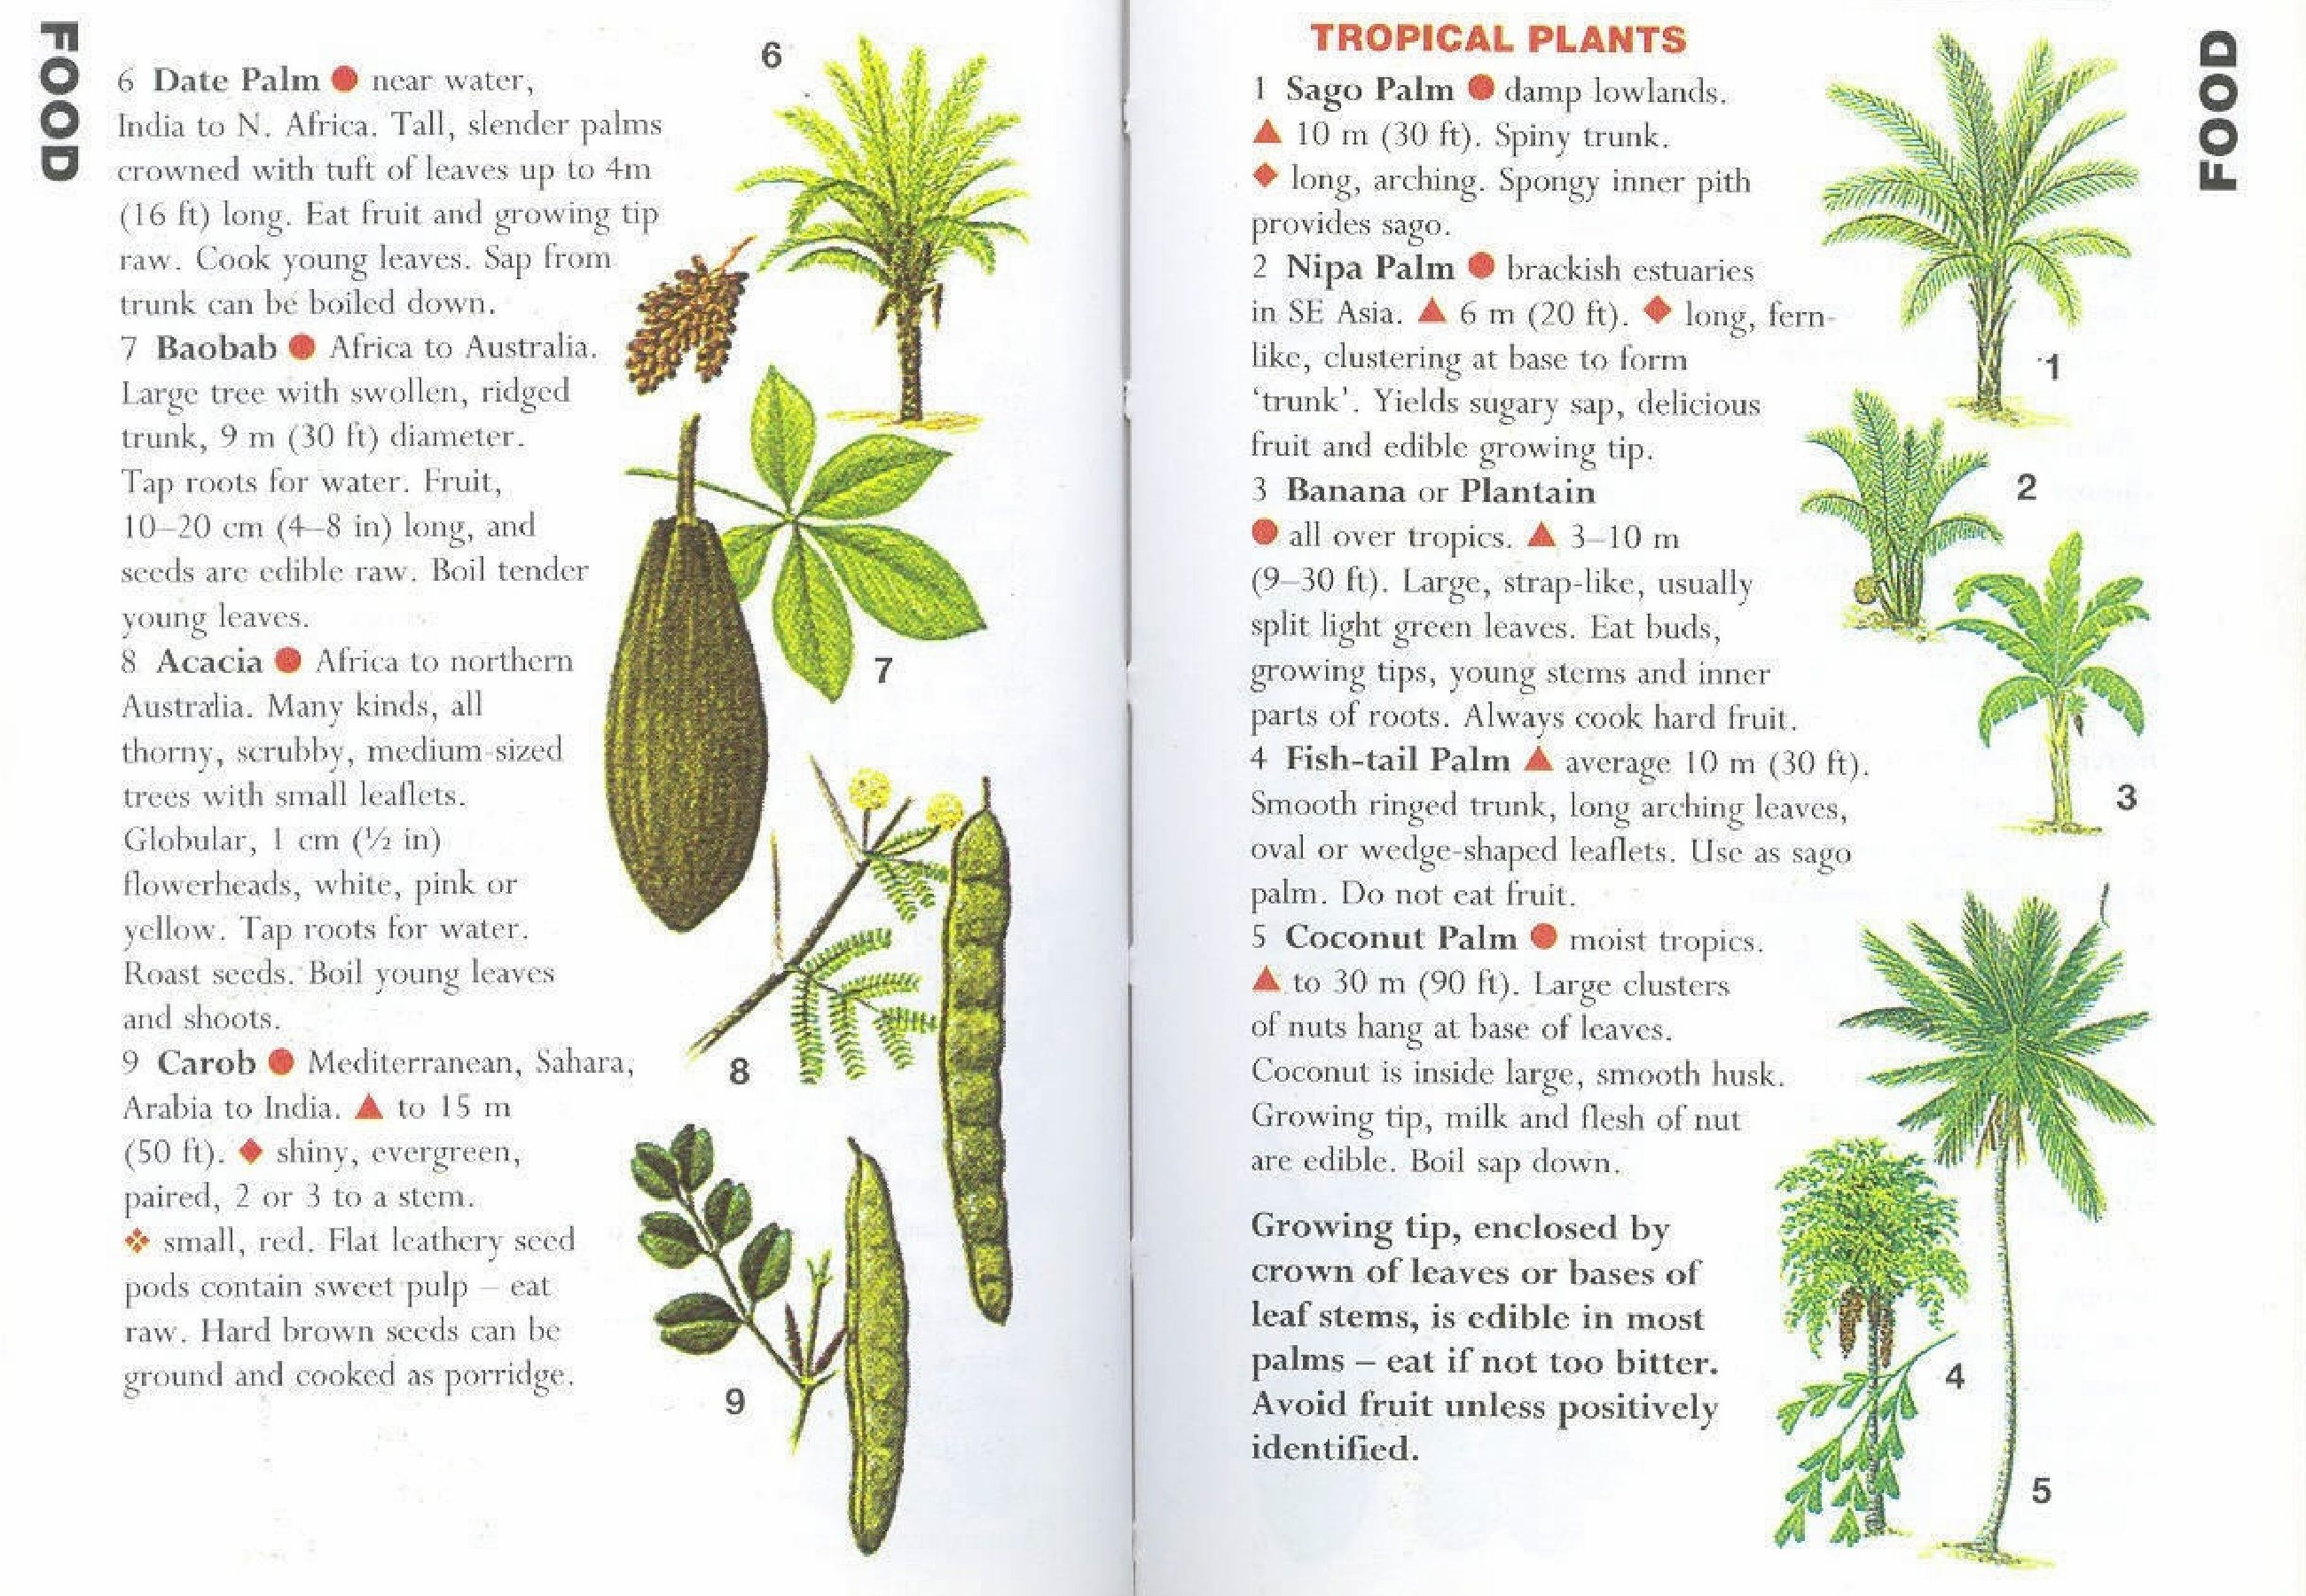 Growing tip, enclosed by crown of leaves or bases of leaf stems, is edible in most palms – eat if not too bitter. Avoid fruit unless positively identified.  Originally posted: […]